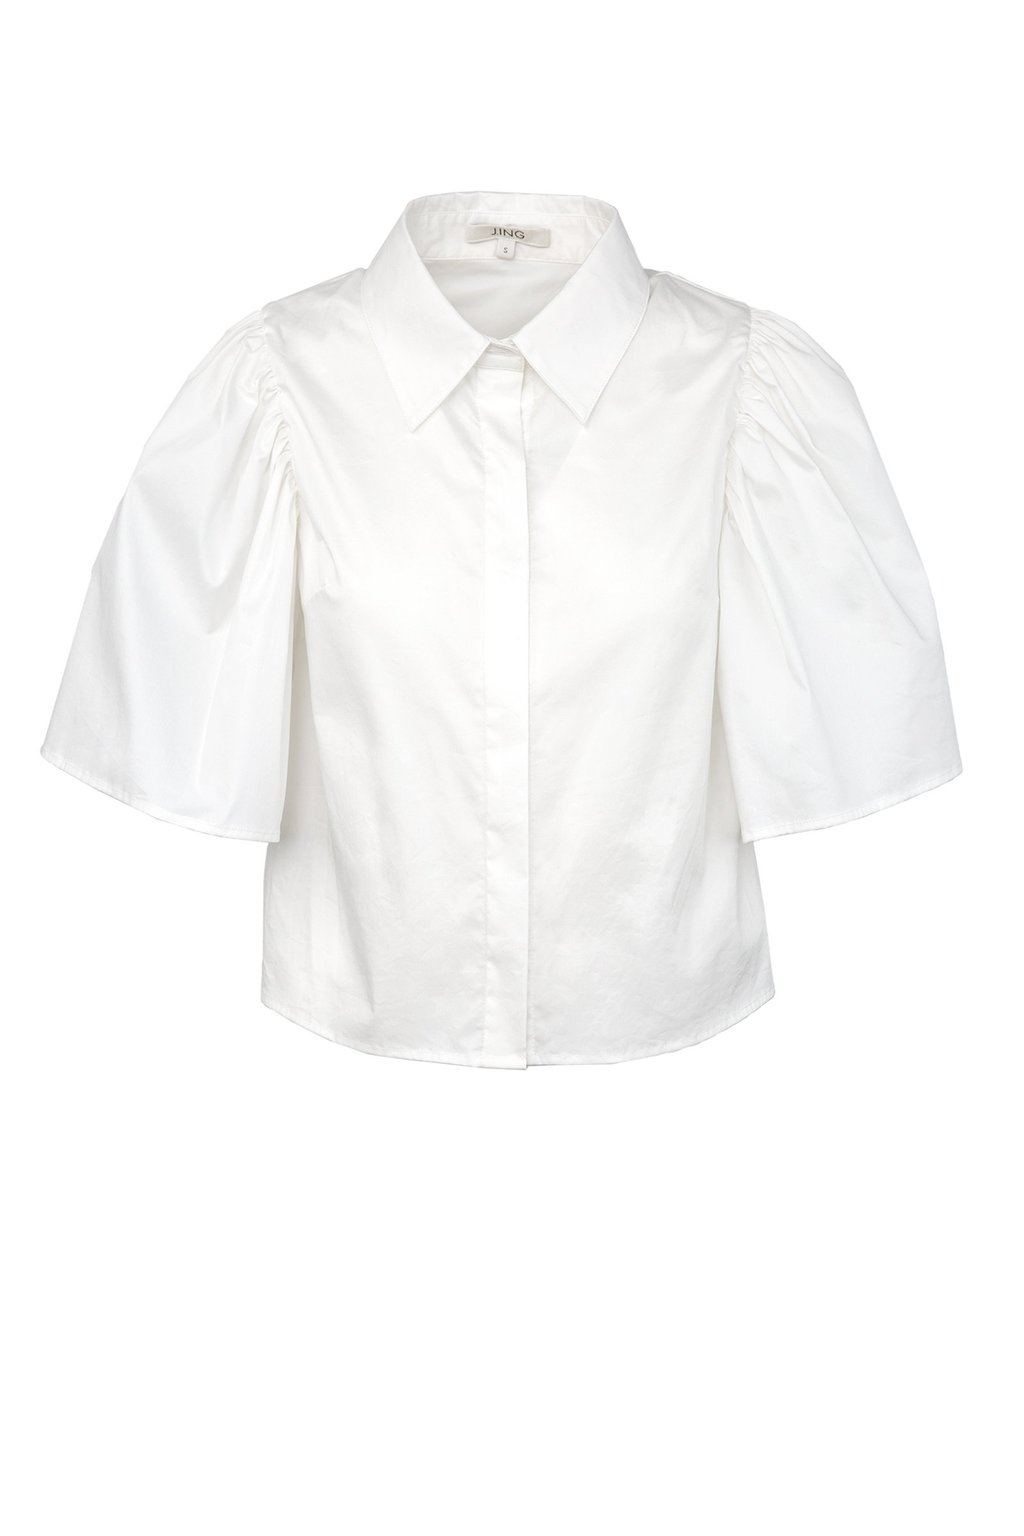 White Lecture Shirt with Flutter Sleeves by J.ING women's clothing